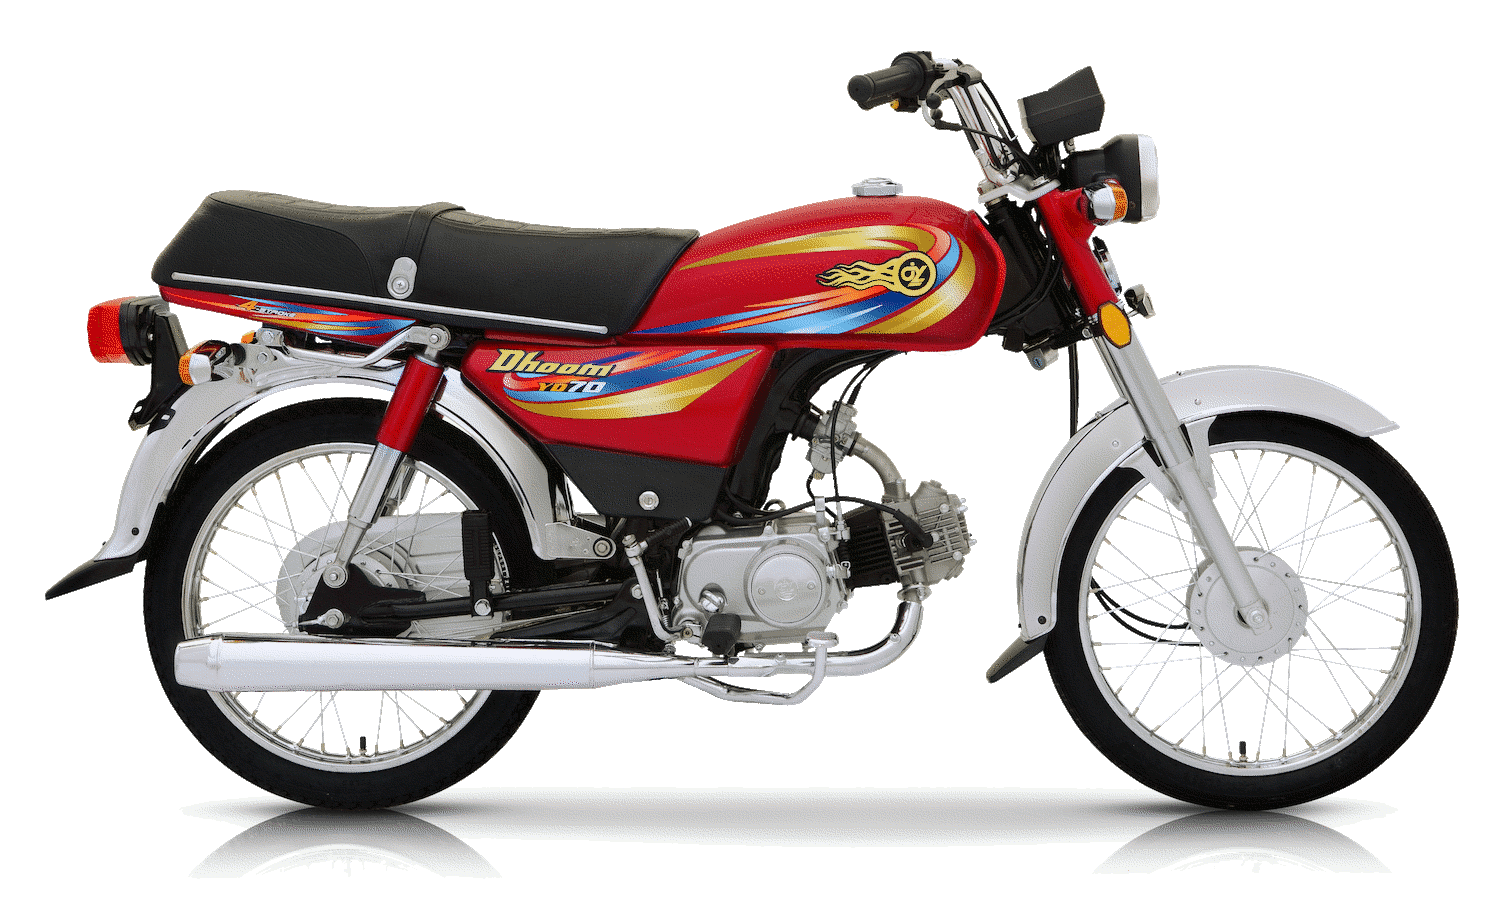 Motorcycle clipart motor wash. Png images free pictures